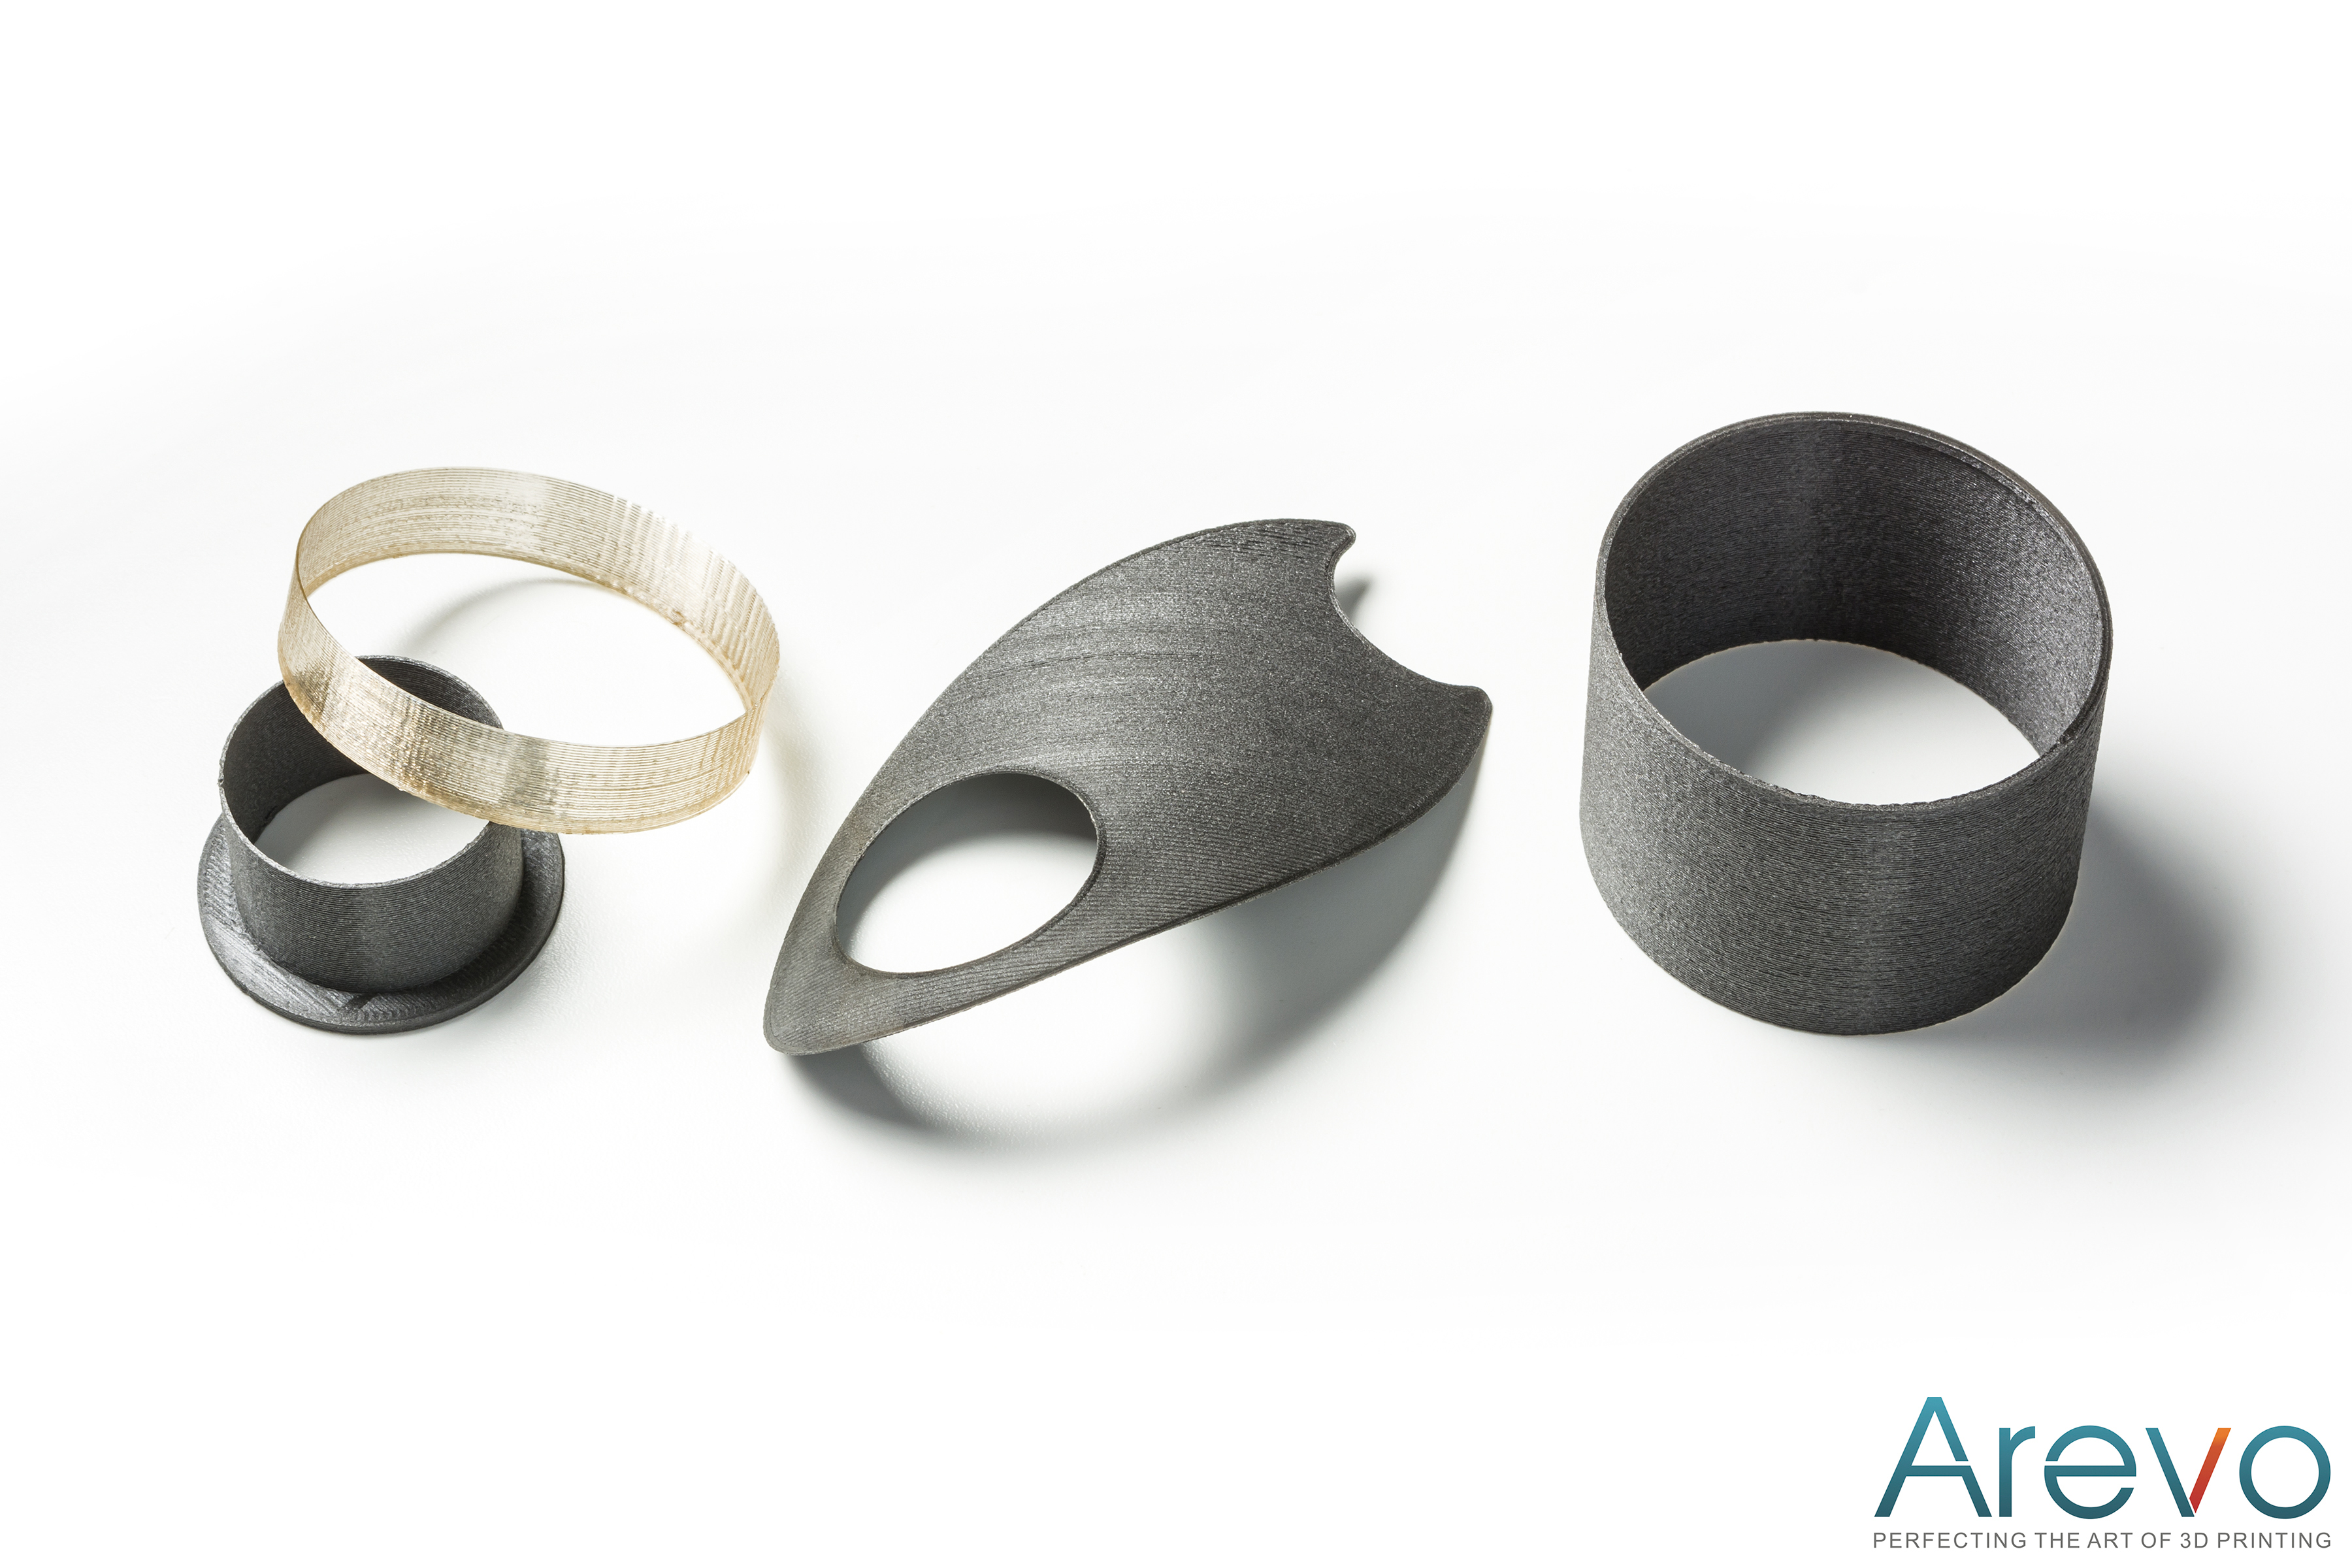 3D printed Ultra Strong Polymer Parts(TM) from Arevo Labs are lighter and stronger than similar products and combine excellent resistance to high temperatures and chemicals with unmatched mechanical properties.